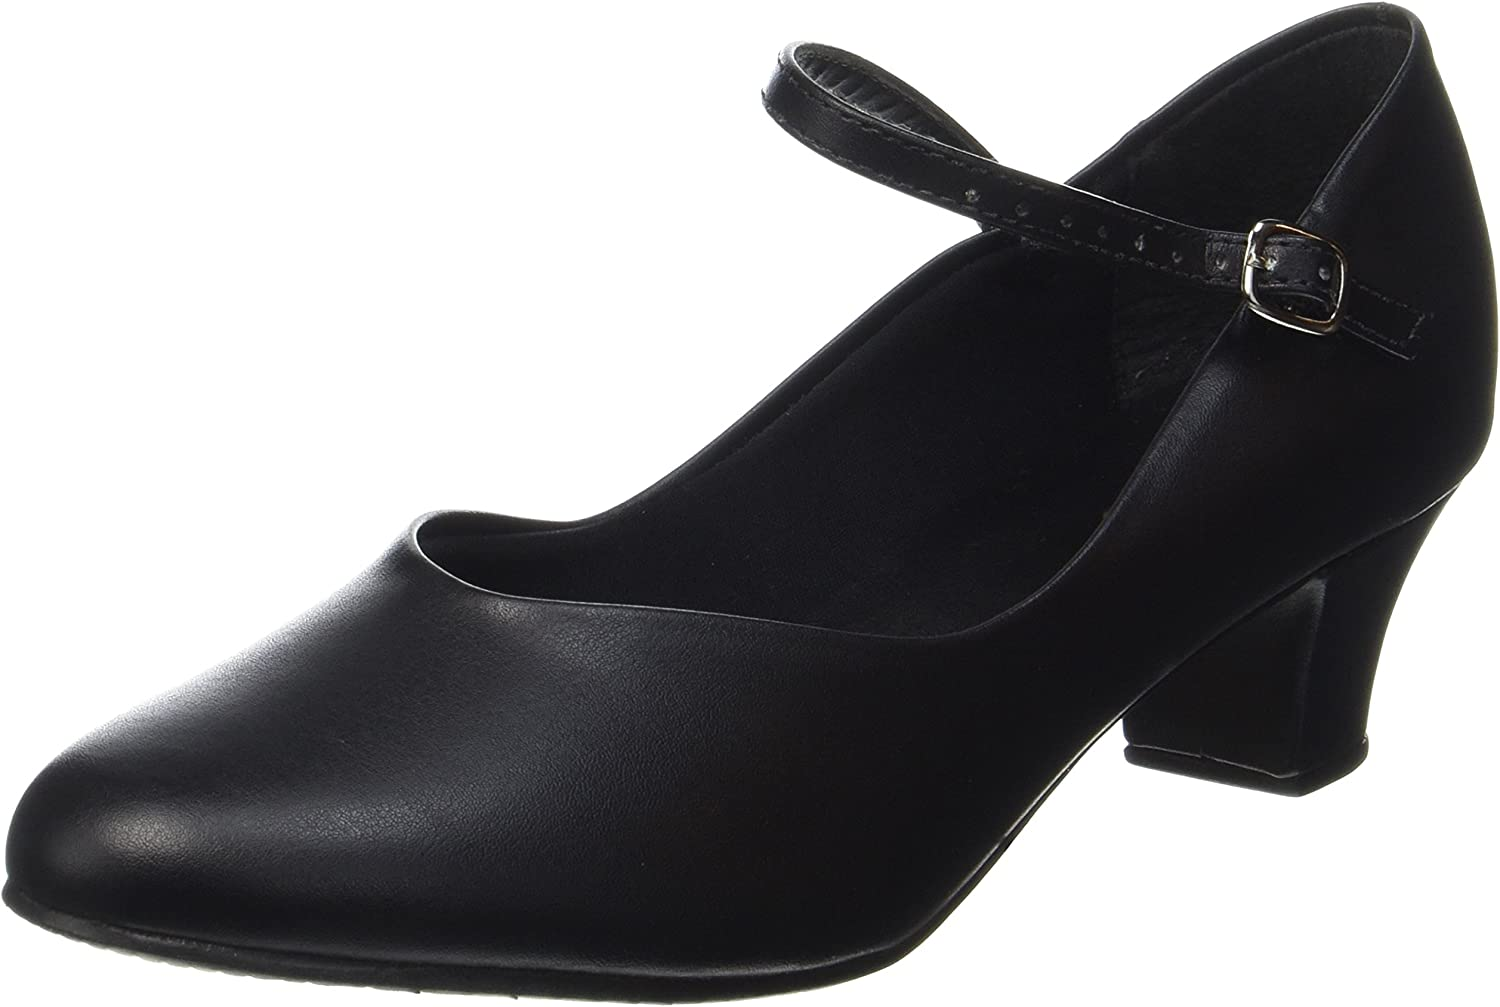 So'Danca CH50 Women's Character shoes 1.5in Heel